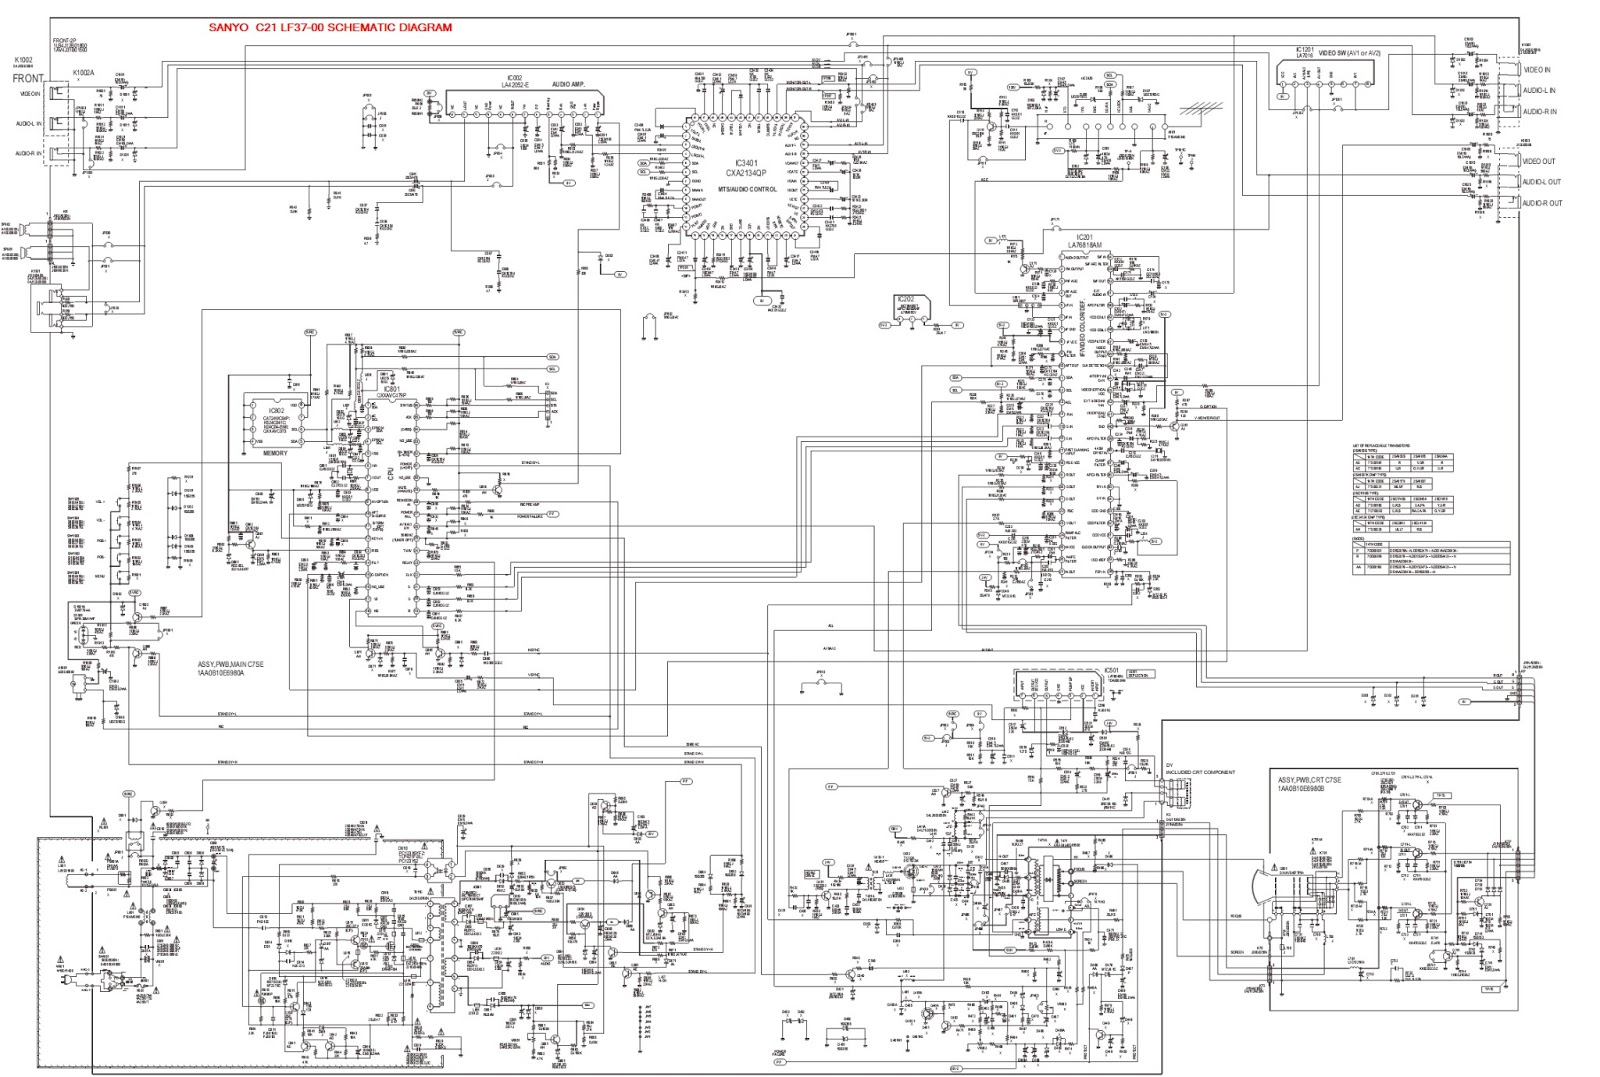 hight resolution of sanyo tv diagram wiring diagrams tar sanyo tv kit diagram sanyo tv diagram